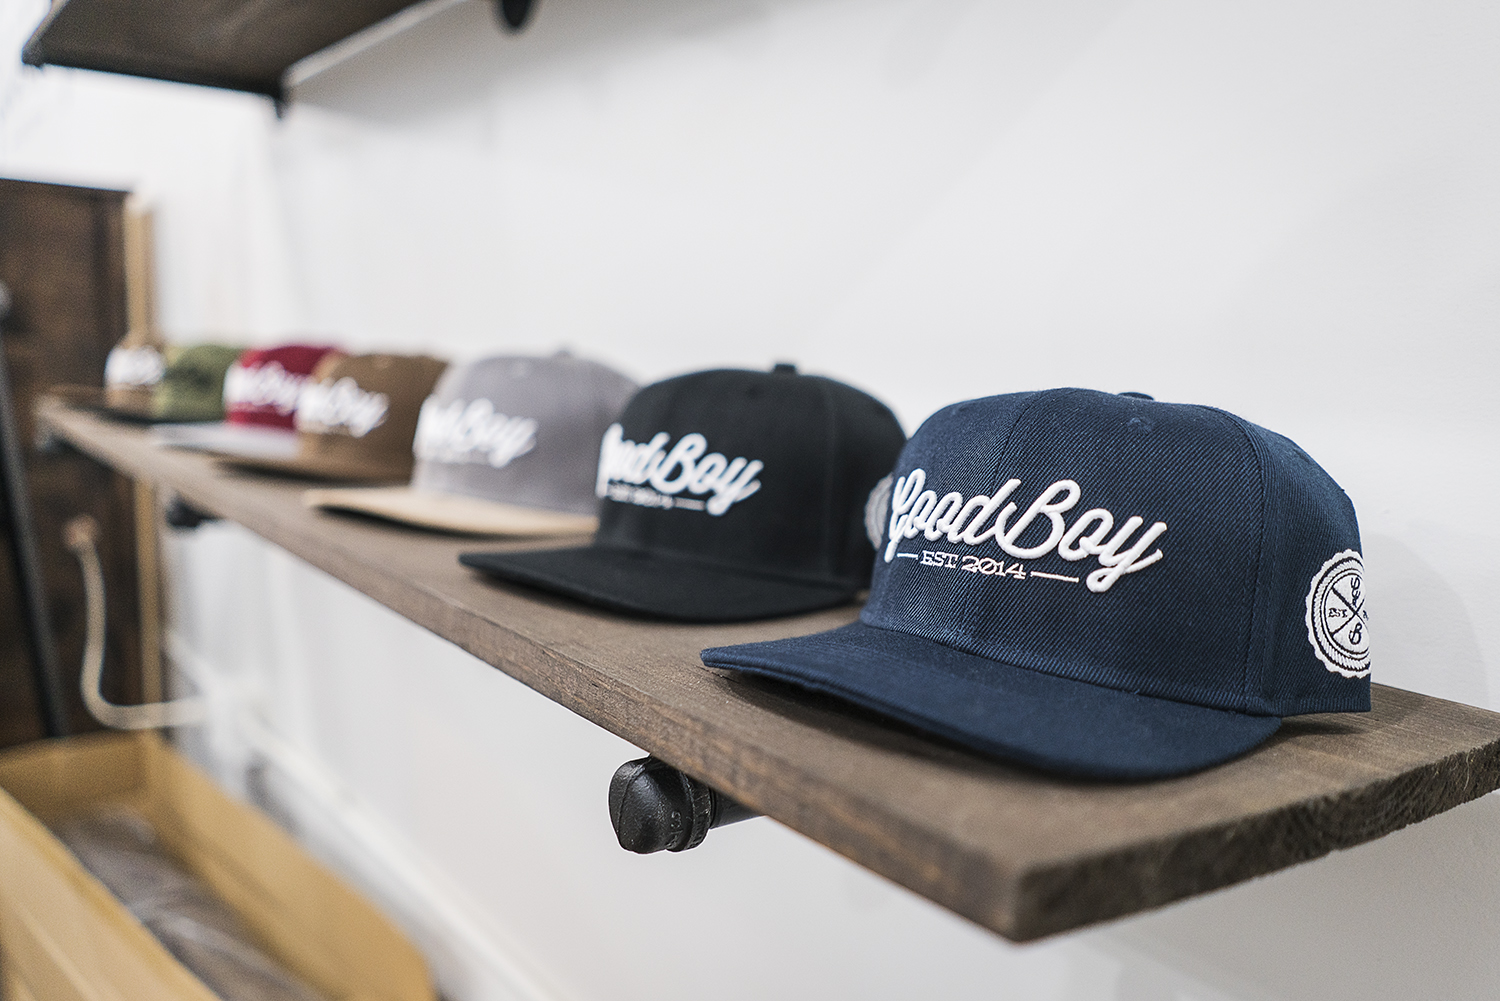 Flint, MI - Monday, November 13, 2017: Shelves are lined with brand new merchandise in the new GoodBoy Clothing showroom in downtown Flint. The crew at GoodBoy has been preparing tirelessly for the upcoming grand opening event on Friday, November 17, 2017.